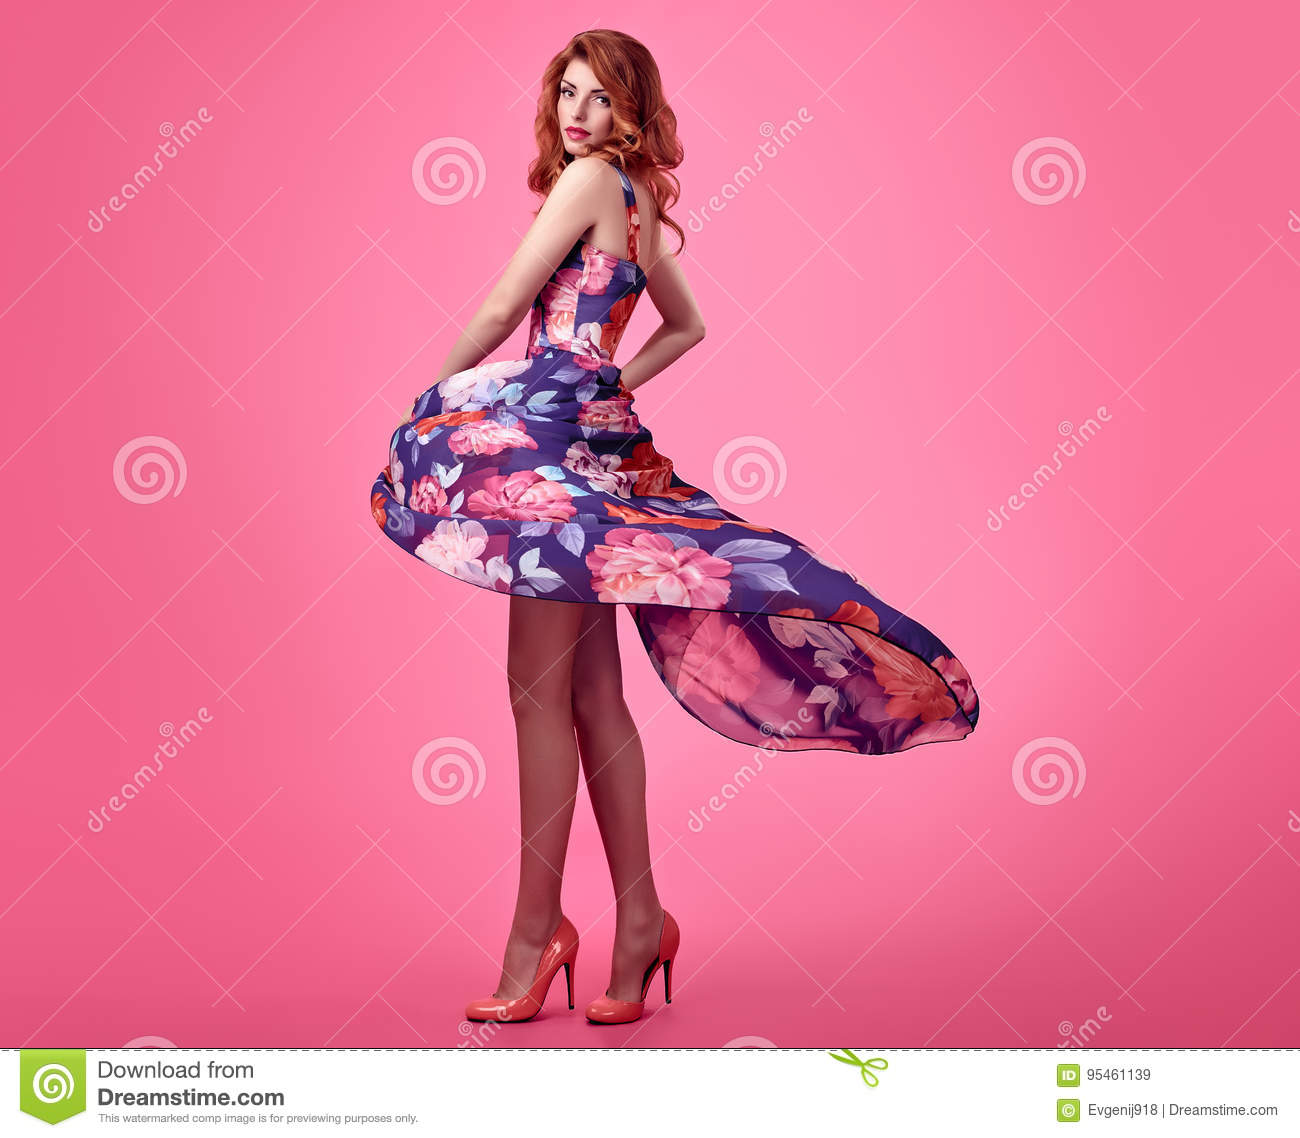 015d00109 Fashion Sensual Redhead Model in fashion pose. Beauty Woman in Summer Outfit.  Trendy Floral Dress